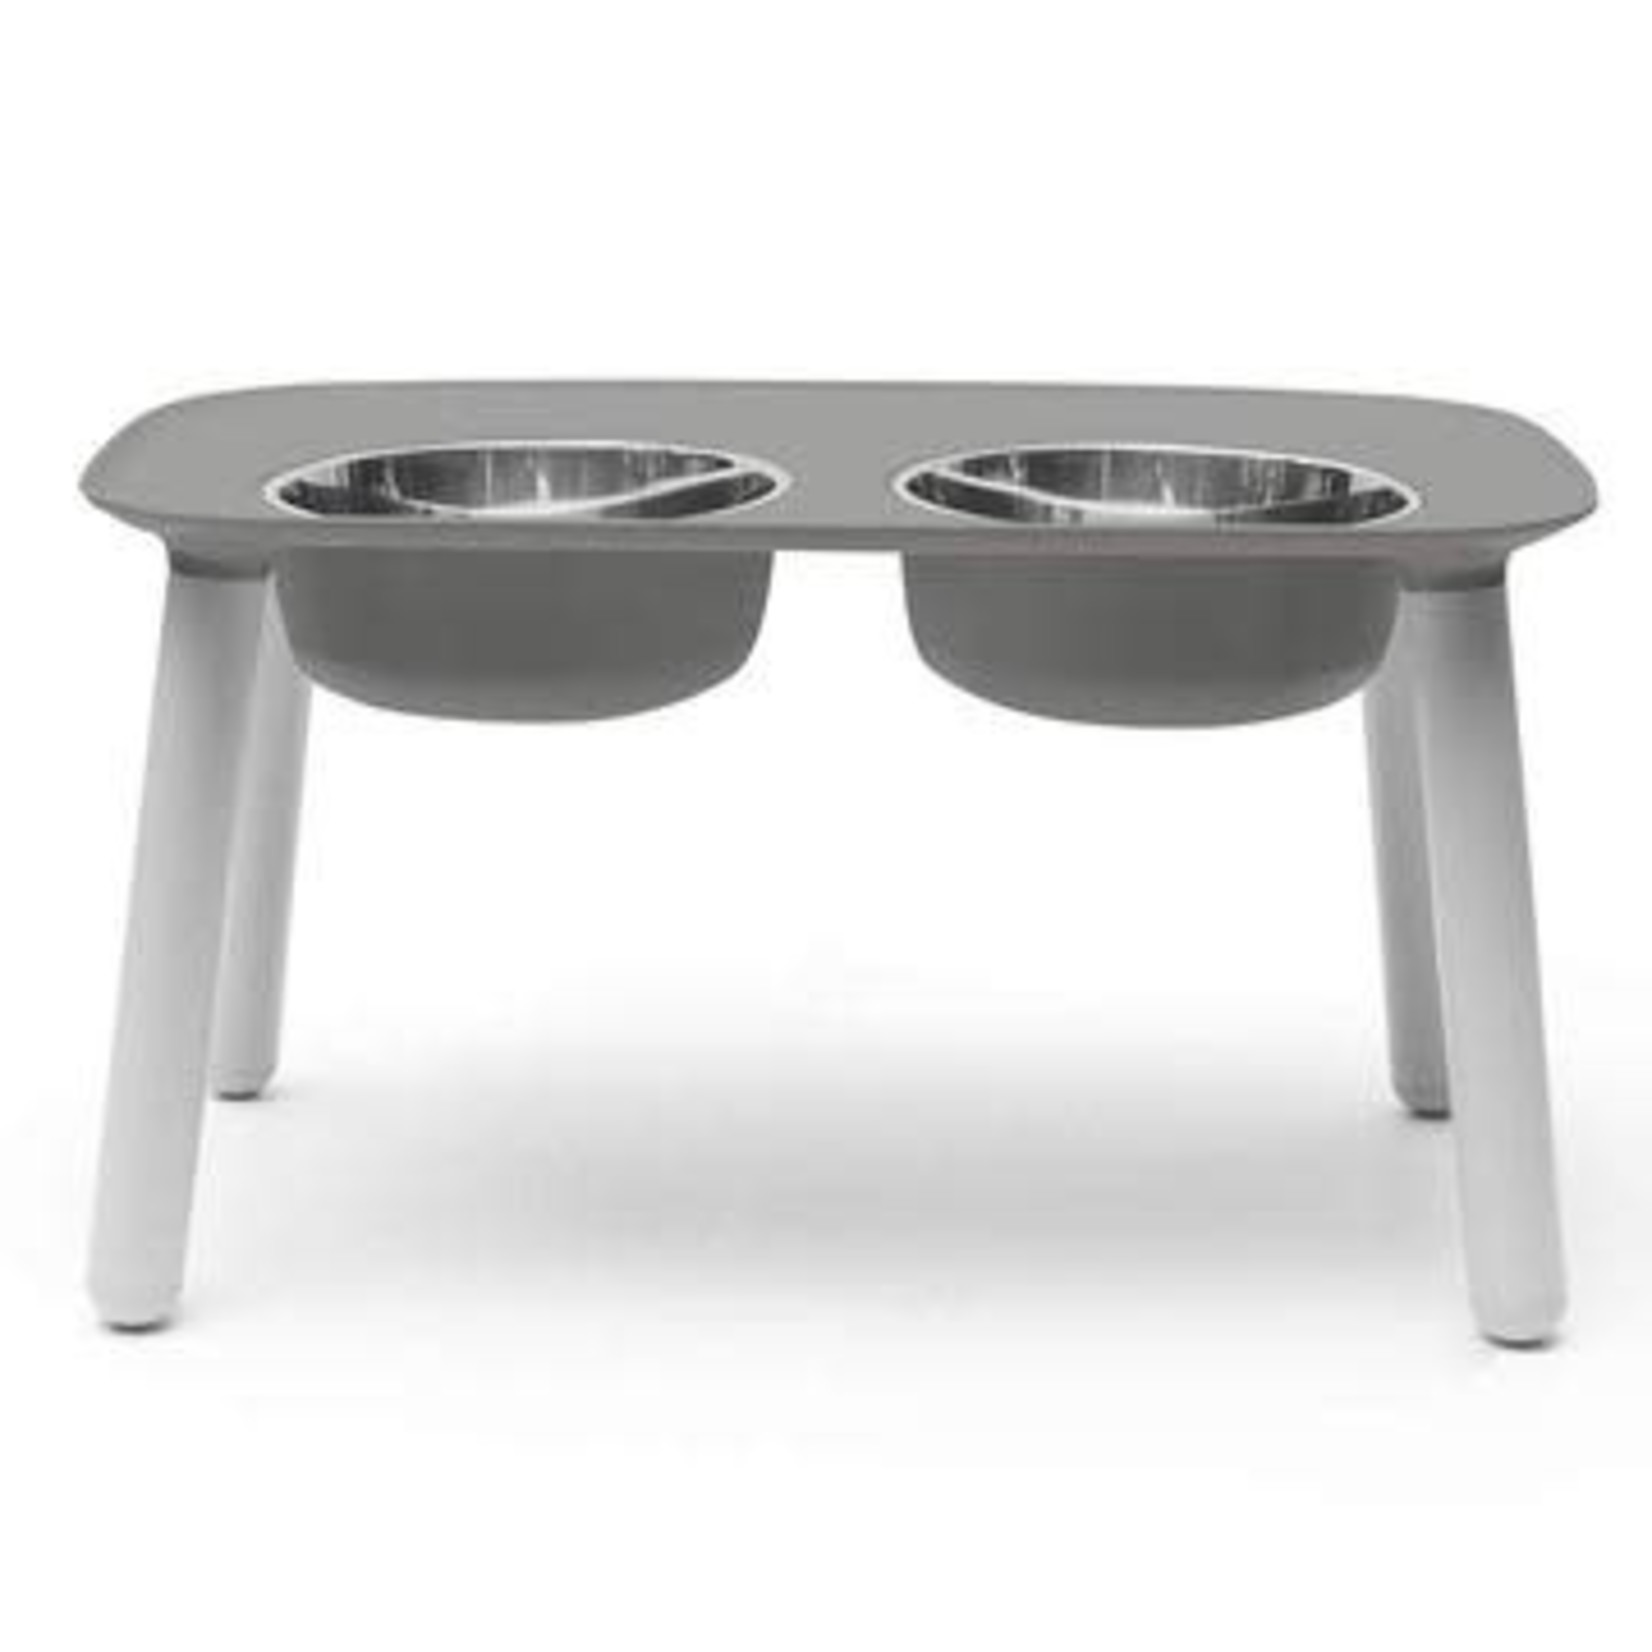 Messy Mutts Messy Mutts Dog Elevated Double Feeder Grey